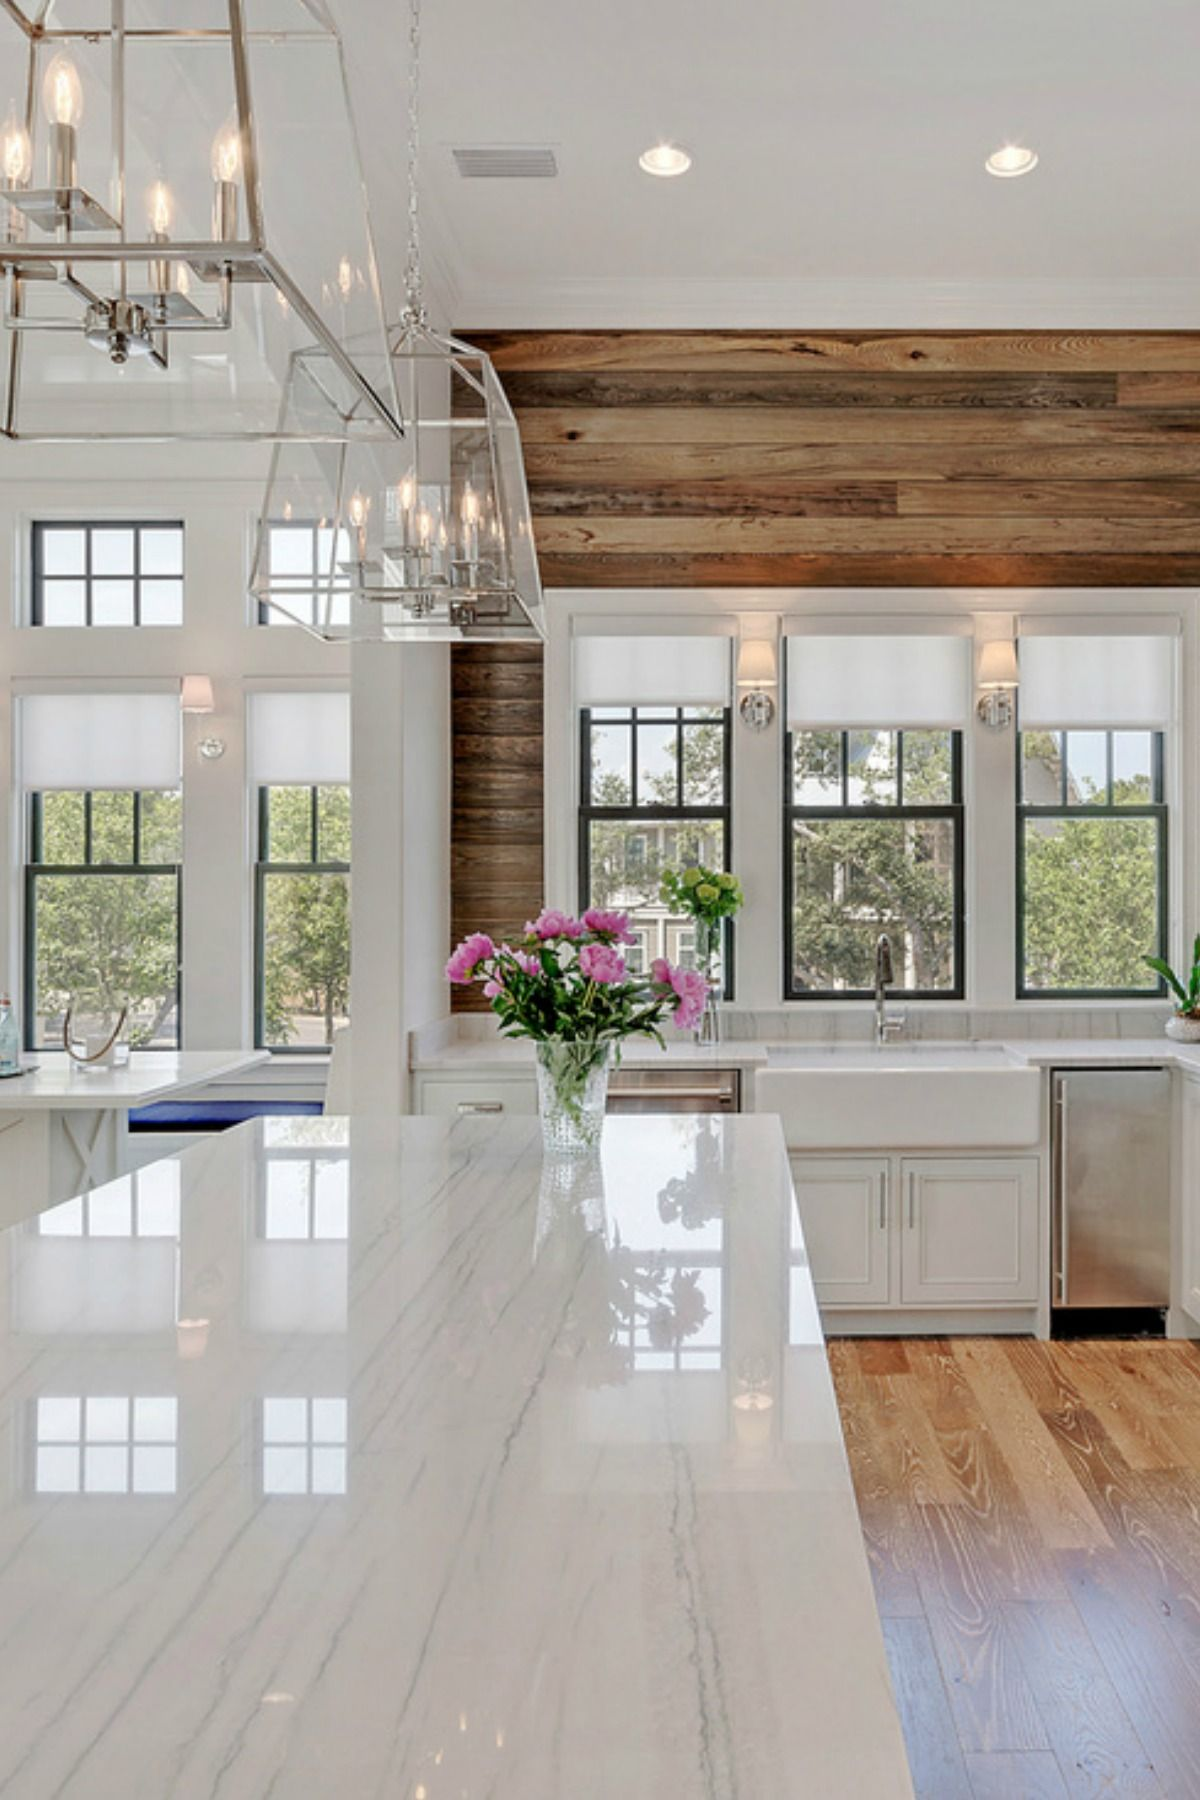 7 elements of the best farmhouse kitchens beauty for on best farmhouse kitchen decor ideas and remodel create your dreams id=87521